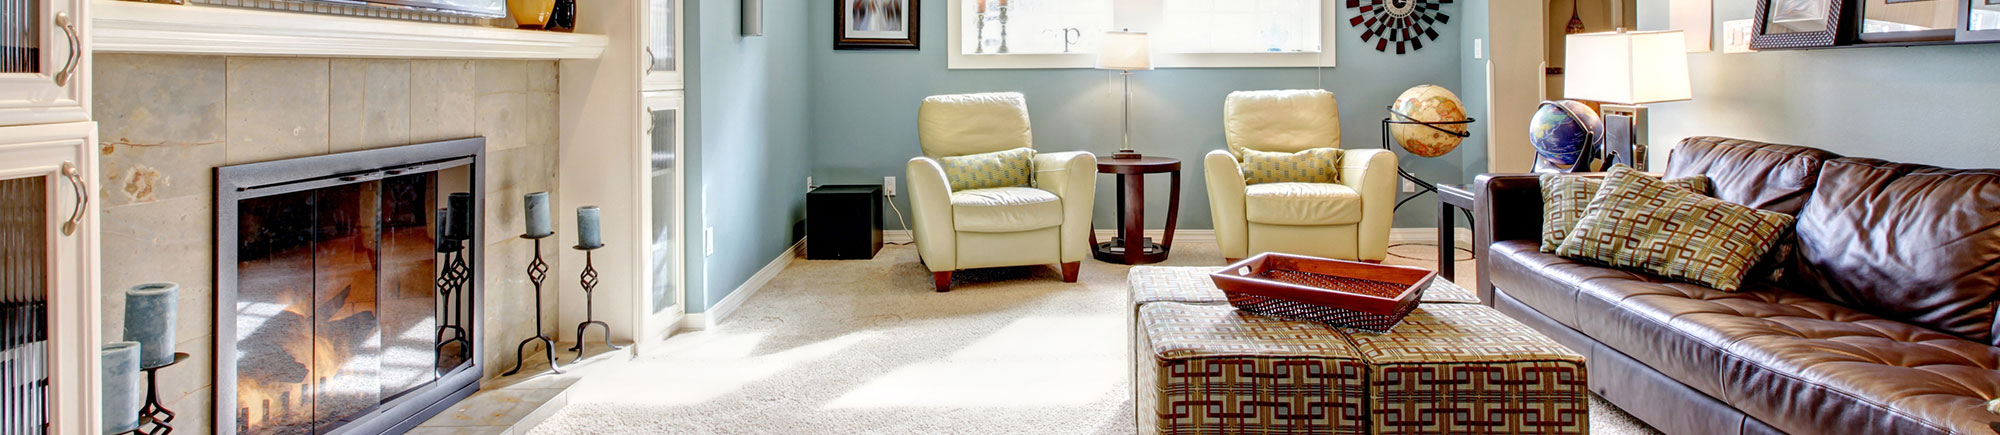 Haines on Carpet Cleaning